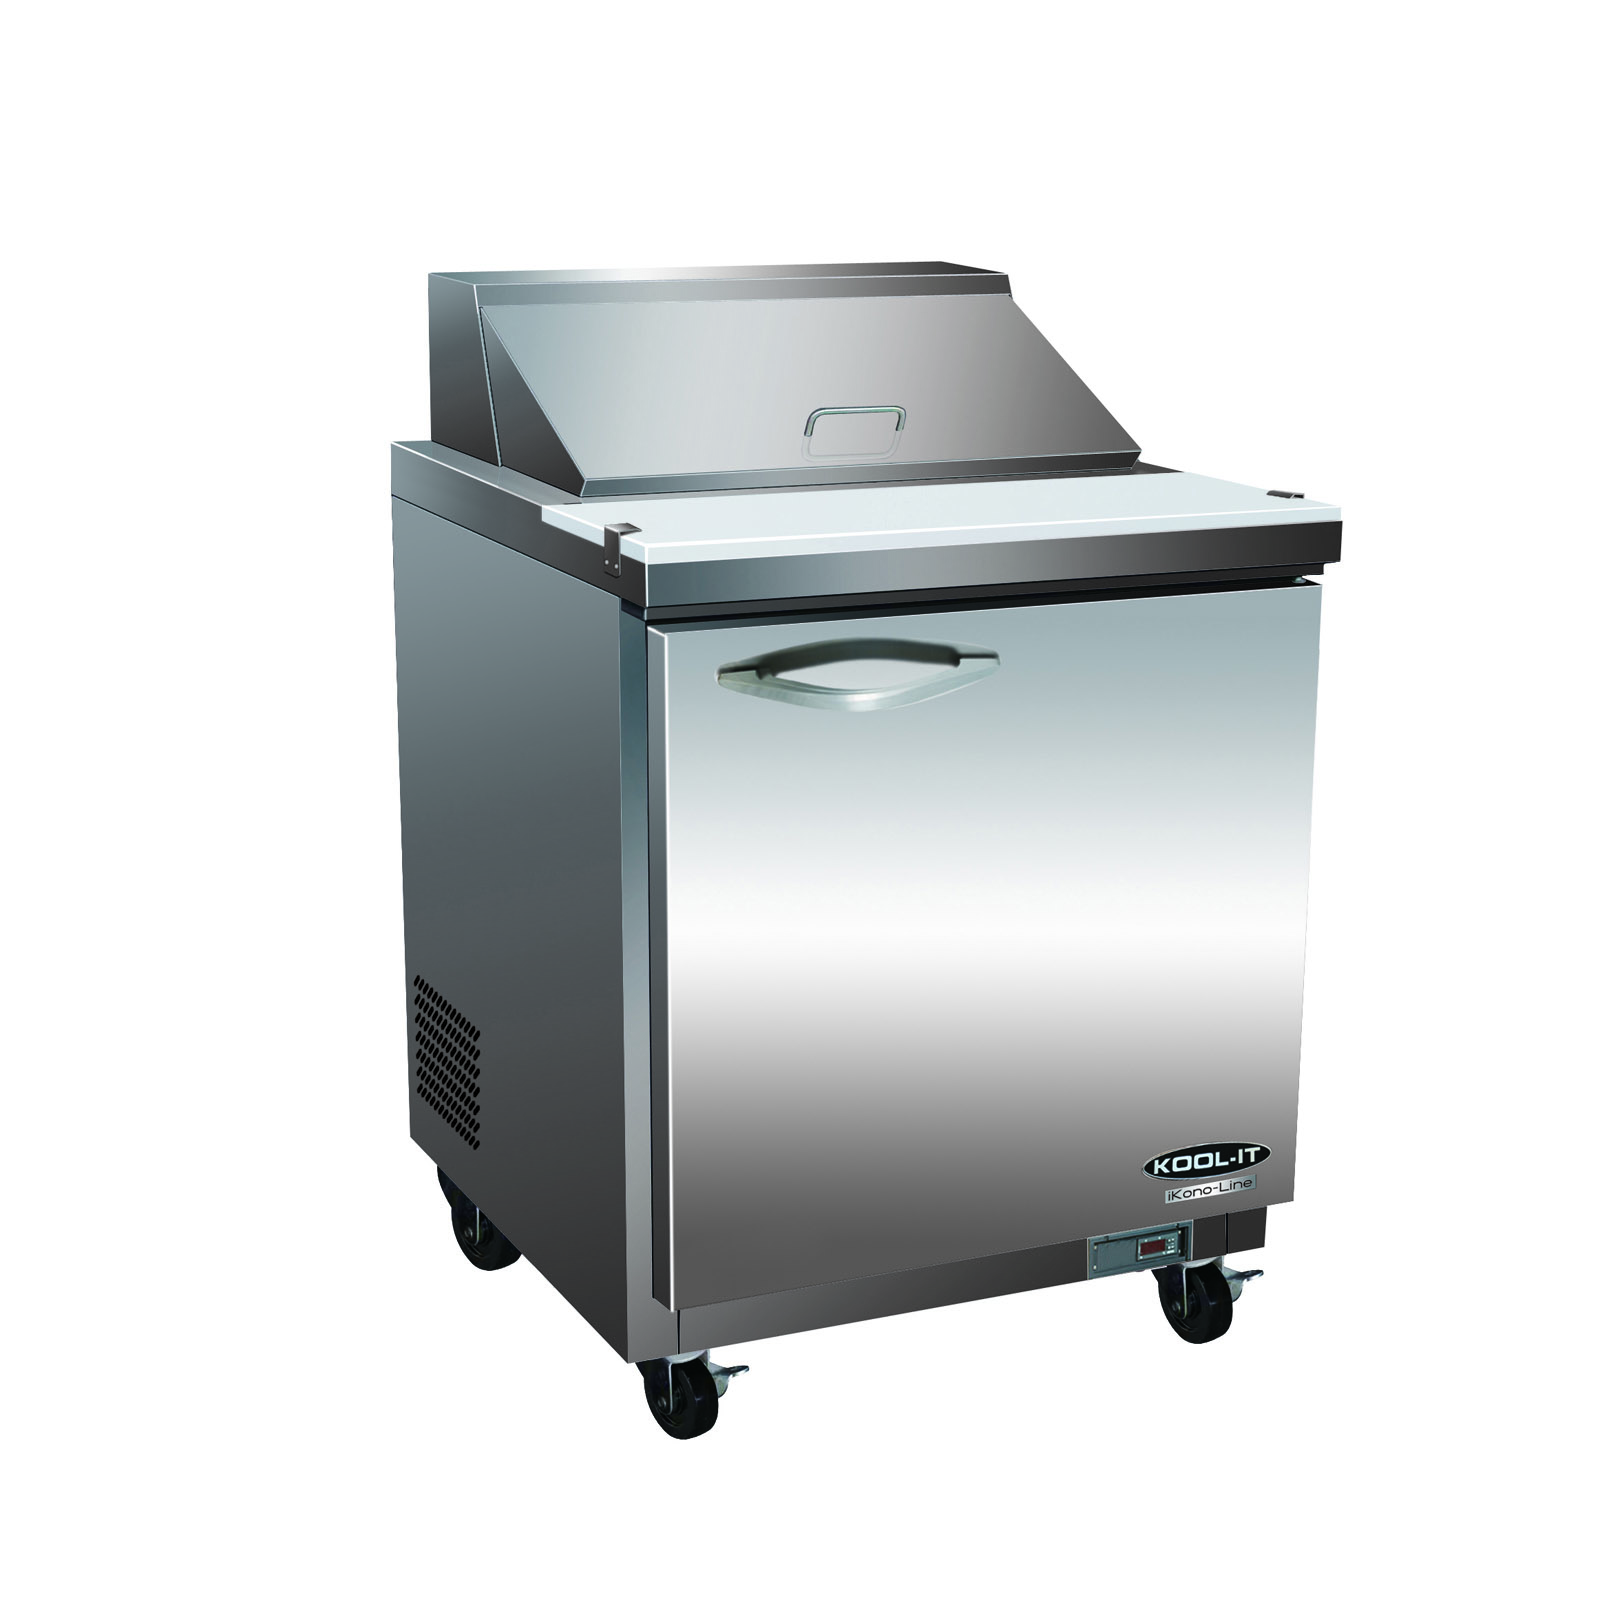 MVP ISP29M refrigerated counter, mega top sandwich / salad unit